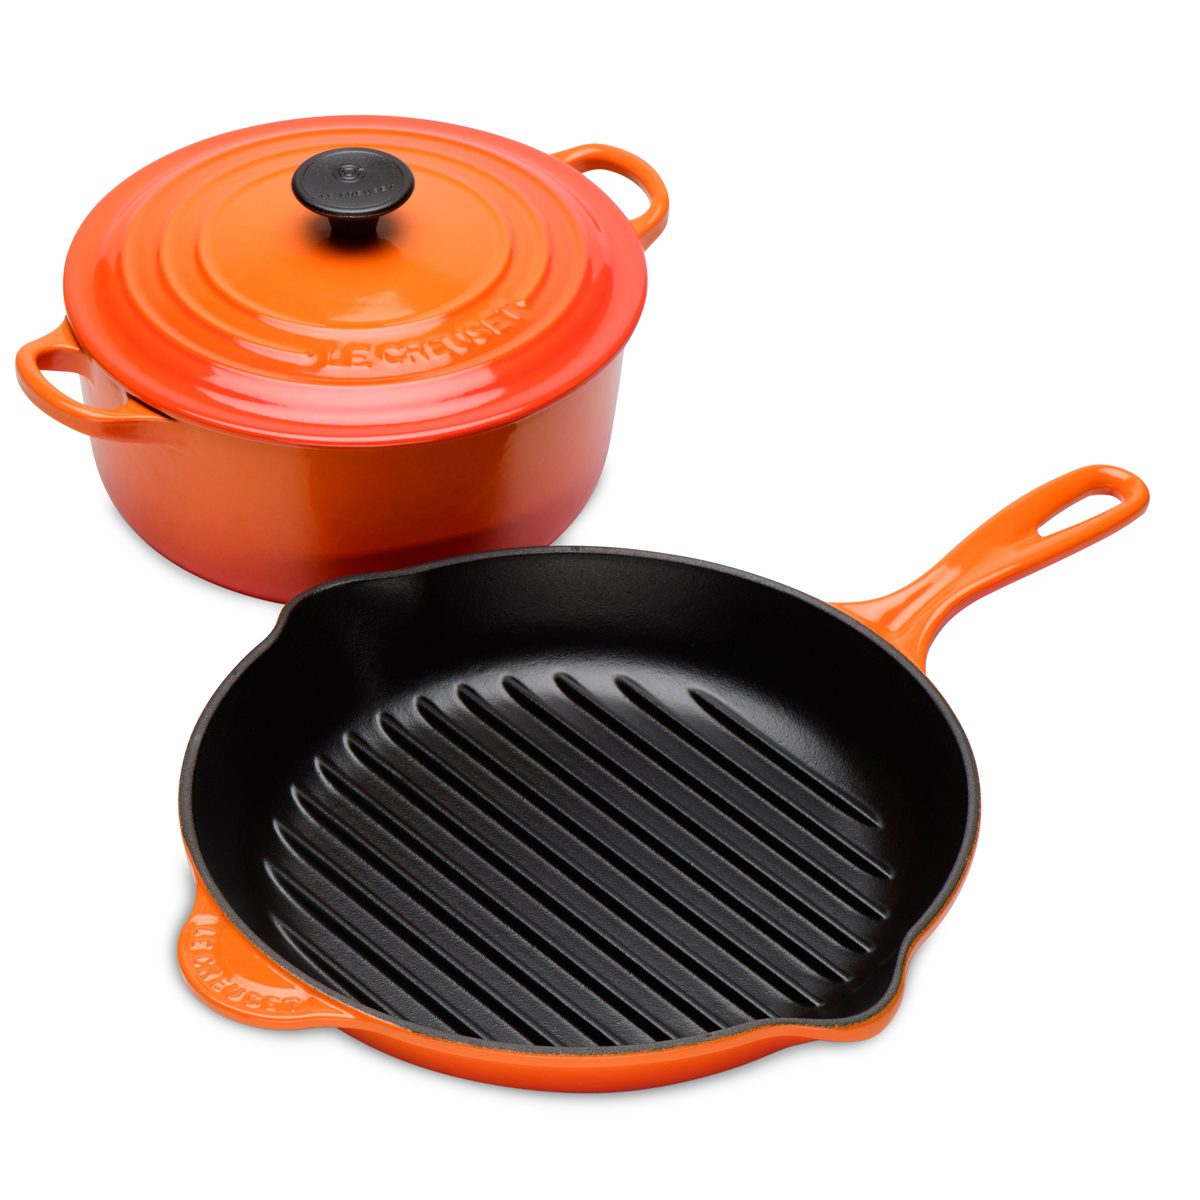 Casserole Pans Home, Furniture & Diy Le Creuset 26cm Round Classic Cast Iron Casserole Dish Volcanic Orange Brand New